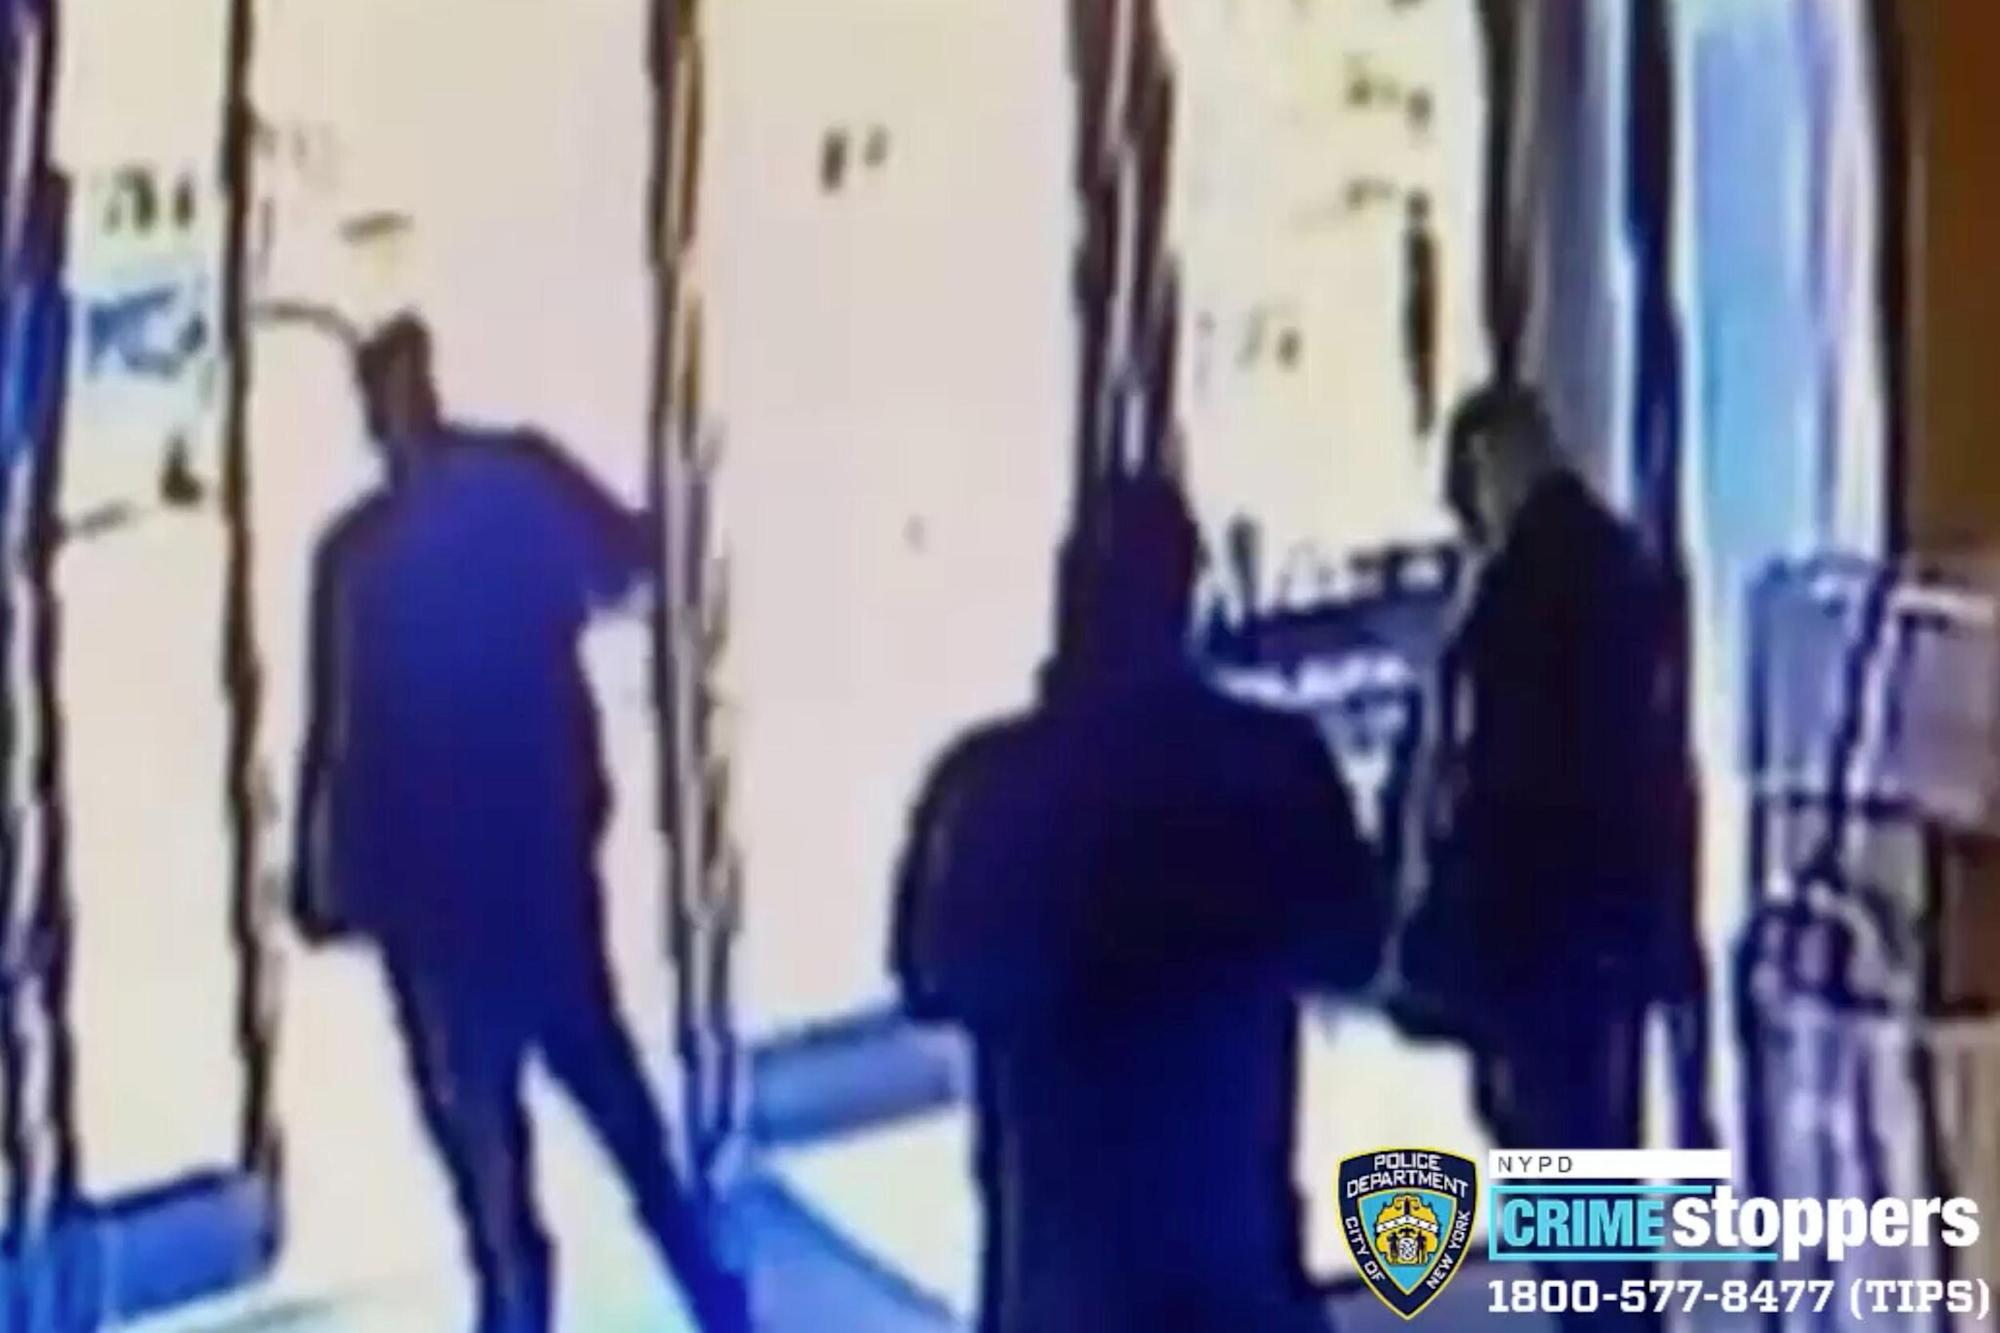 Video shows Asian woman, 65, violently attacked as witnesses look on in NYC